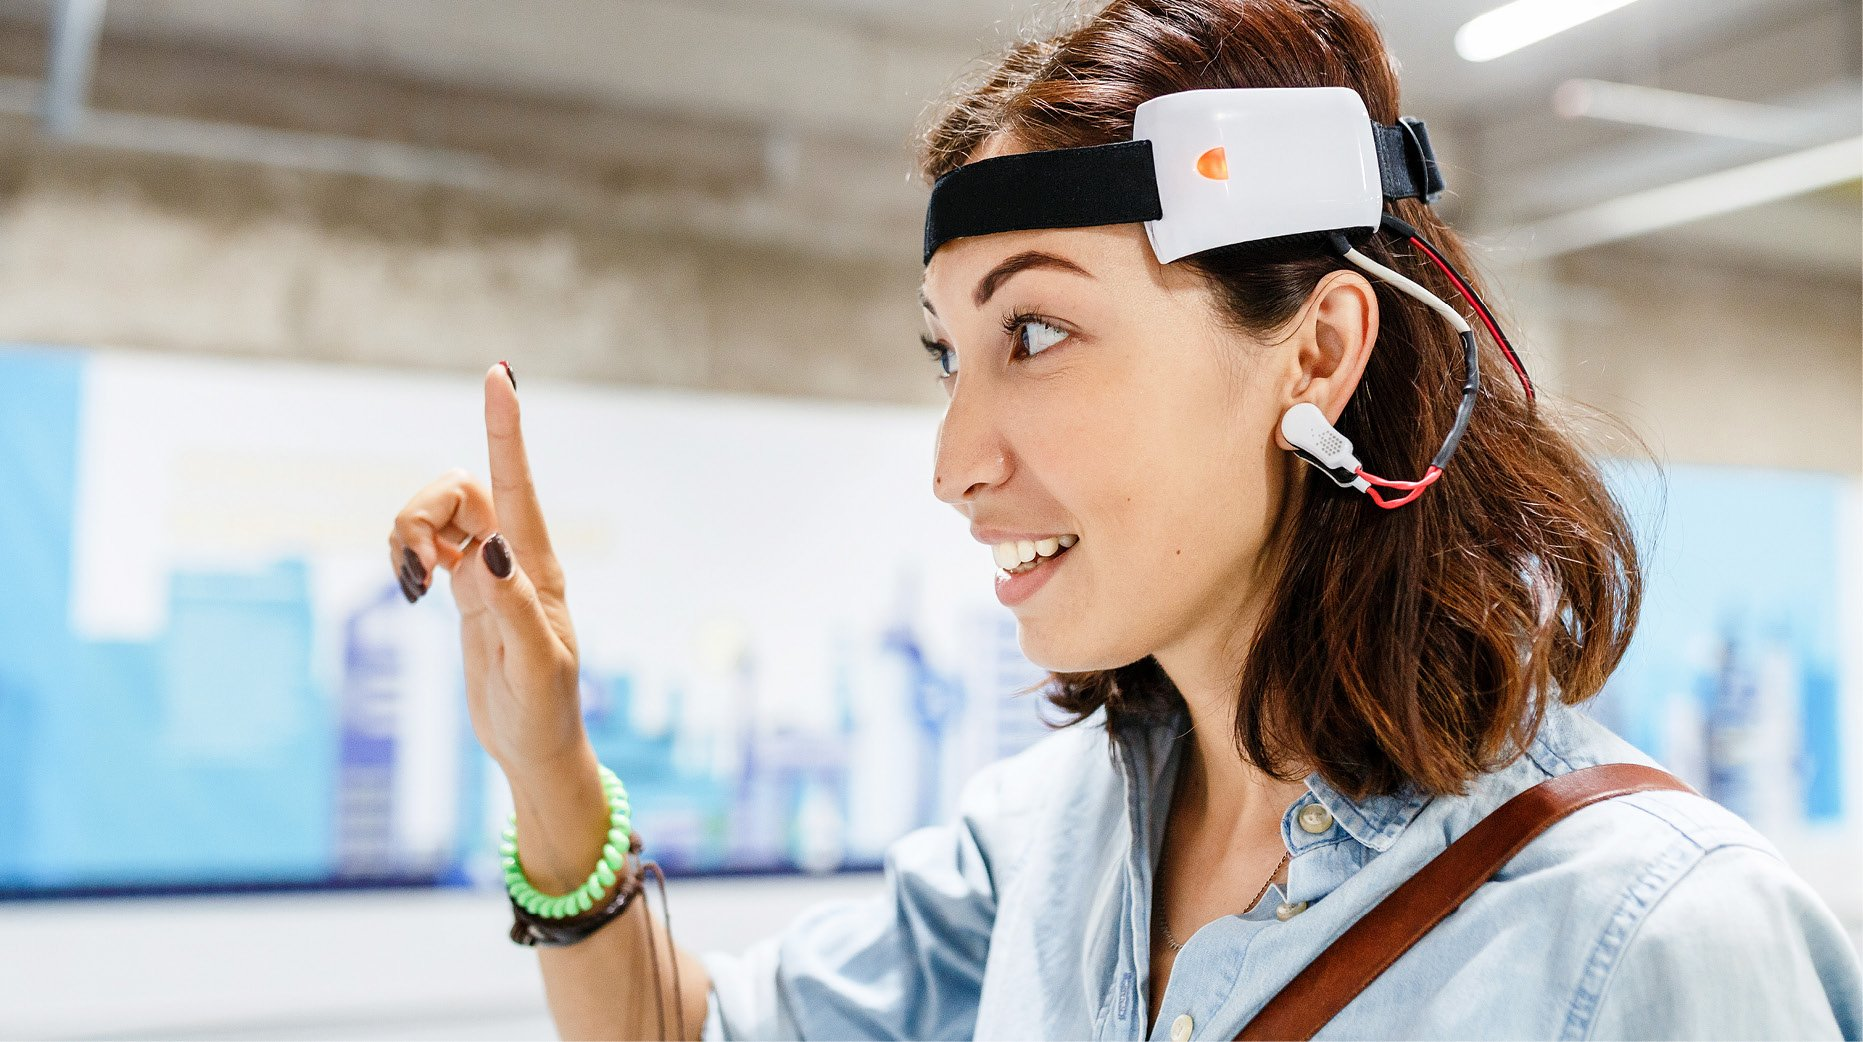 _hero-image-Using Neurofeedback Devices to Retrain Your Brain